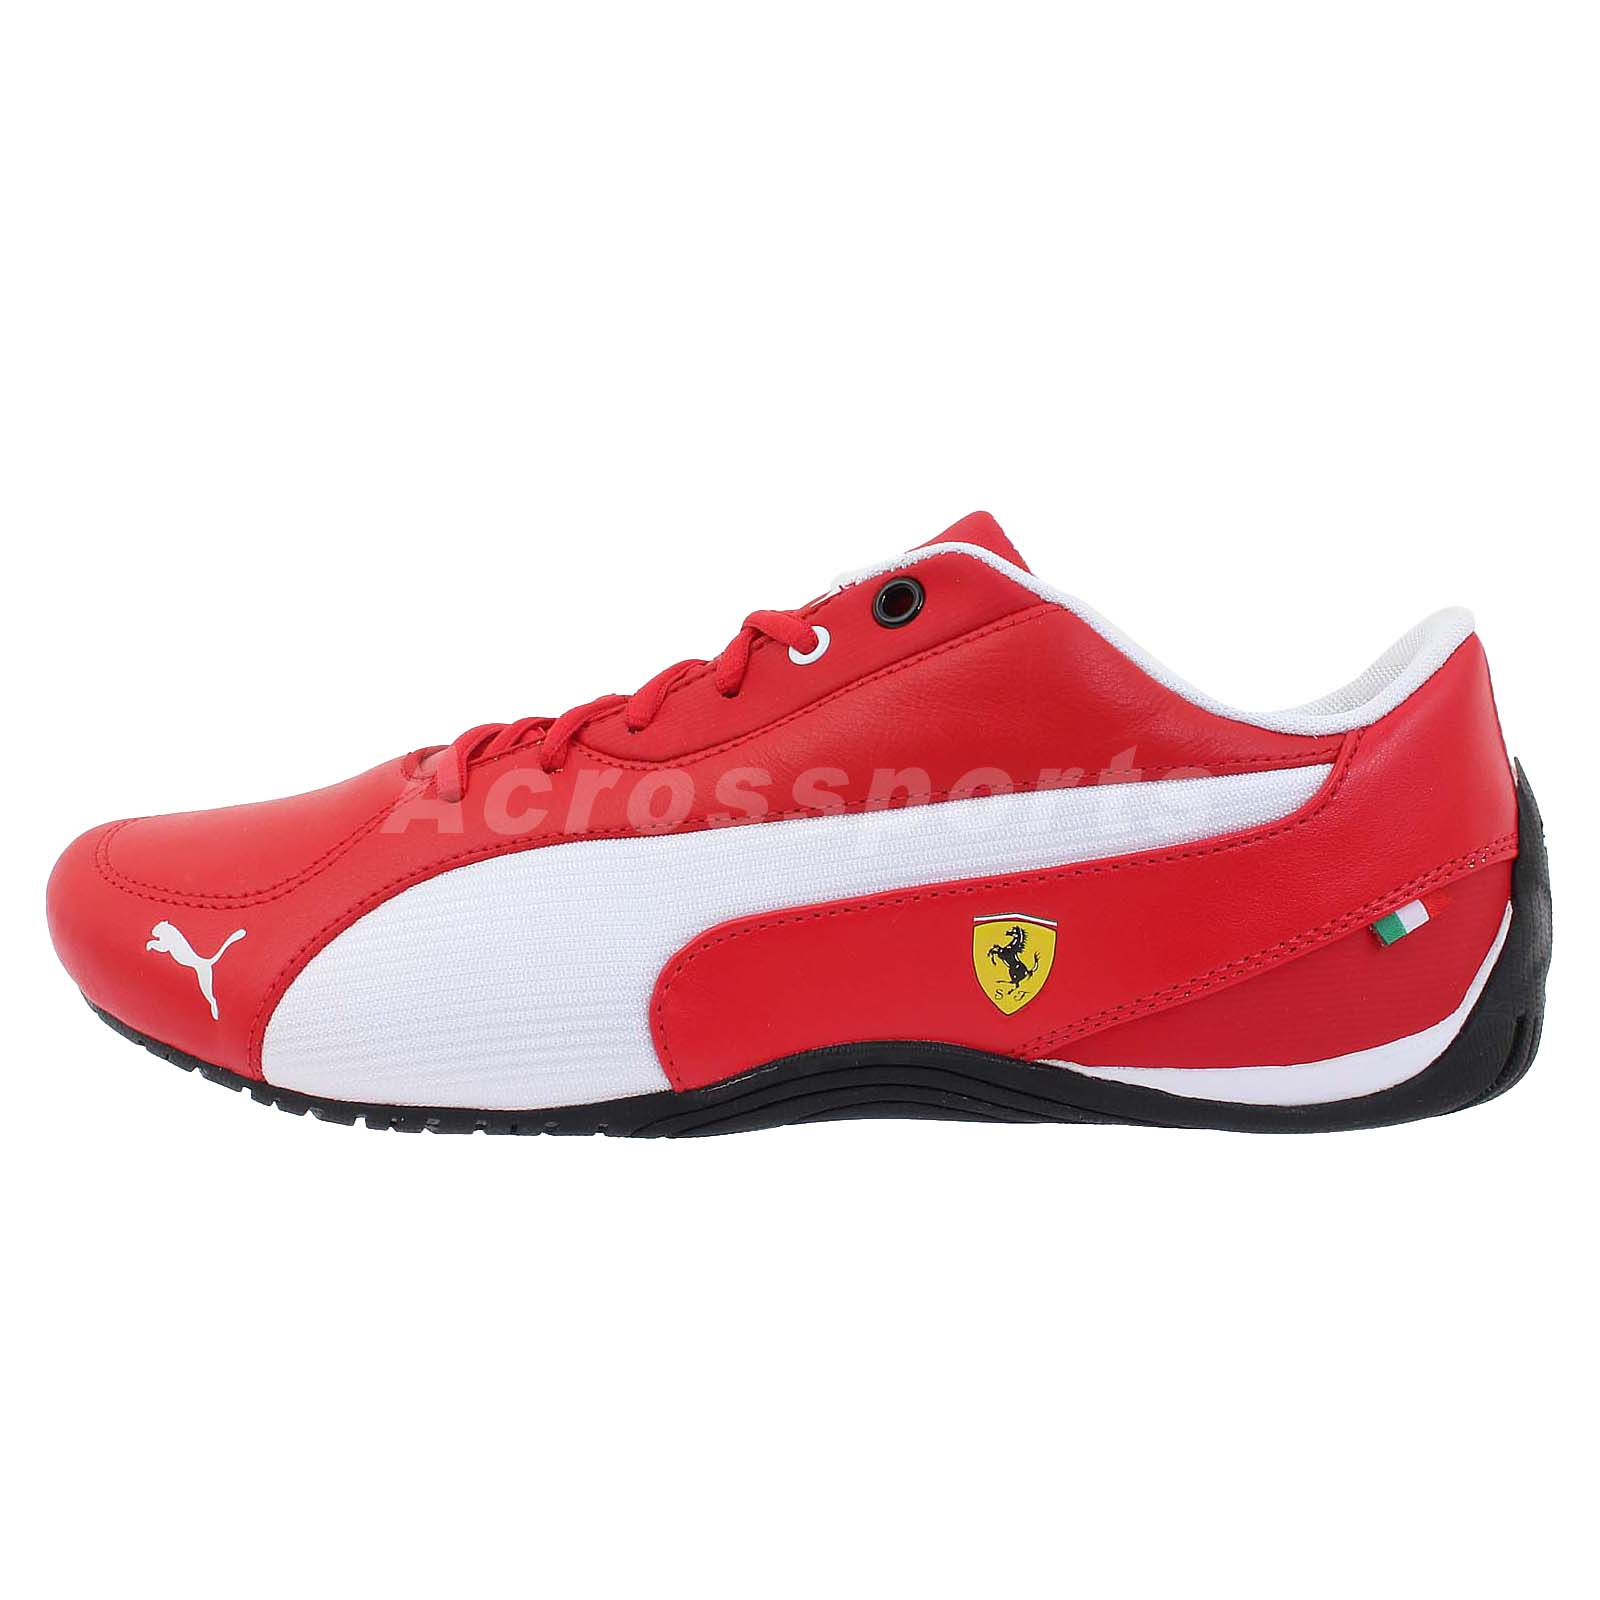 Details about Puma Drift Cat 5 SF 2013 Red White Mens Sport Car Racing ...